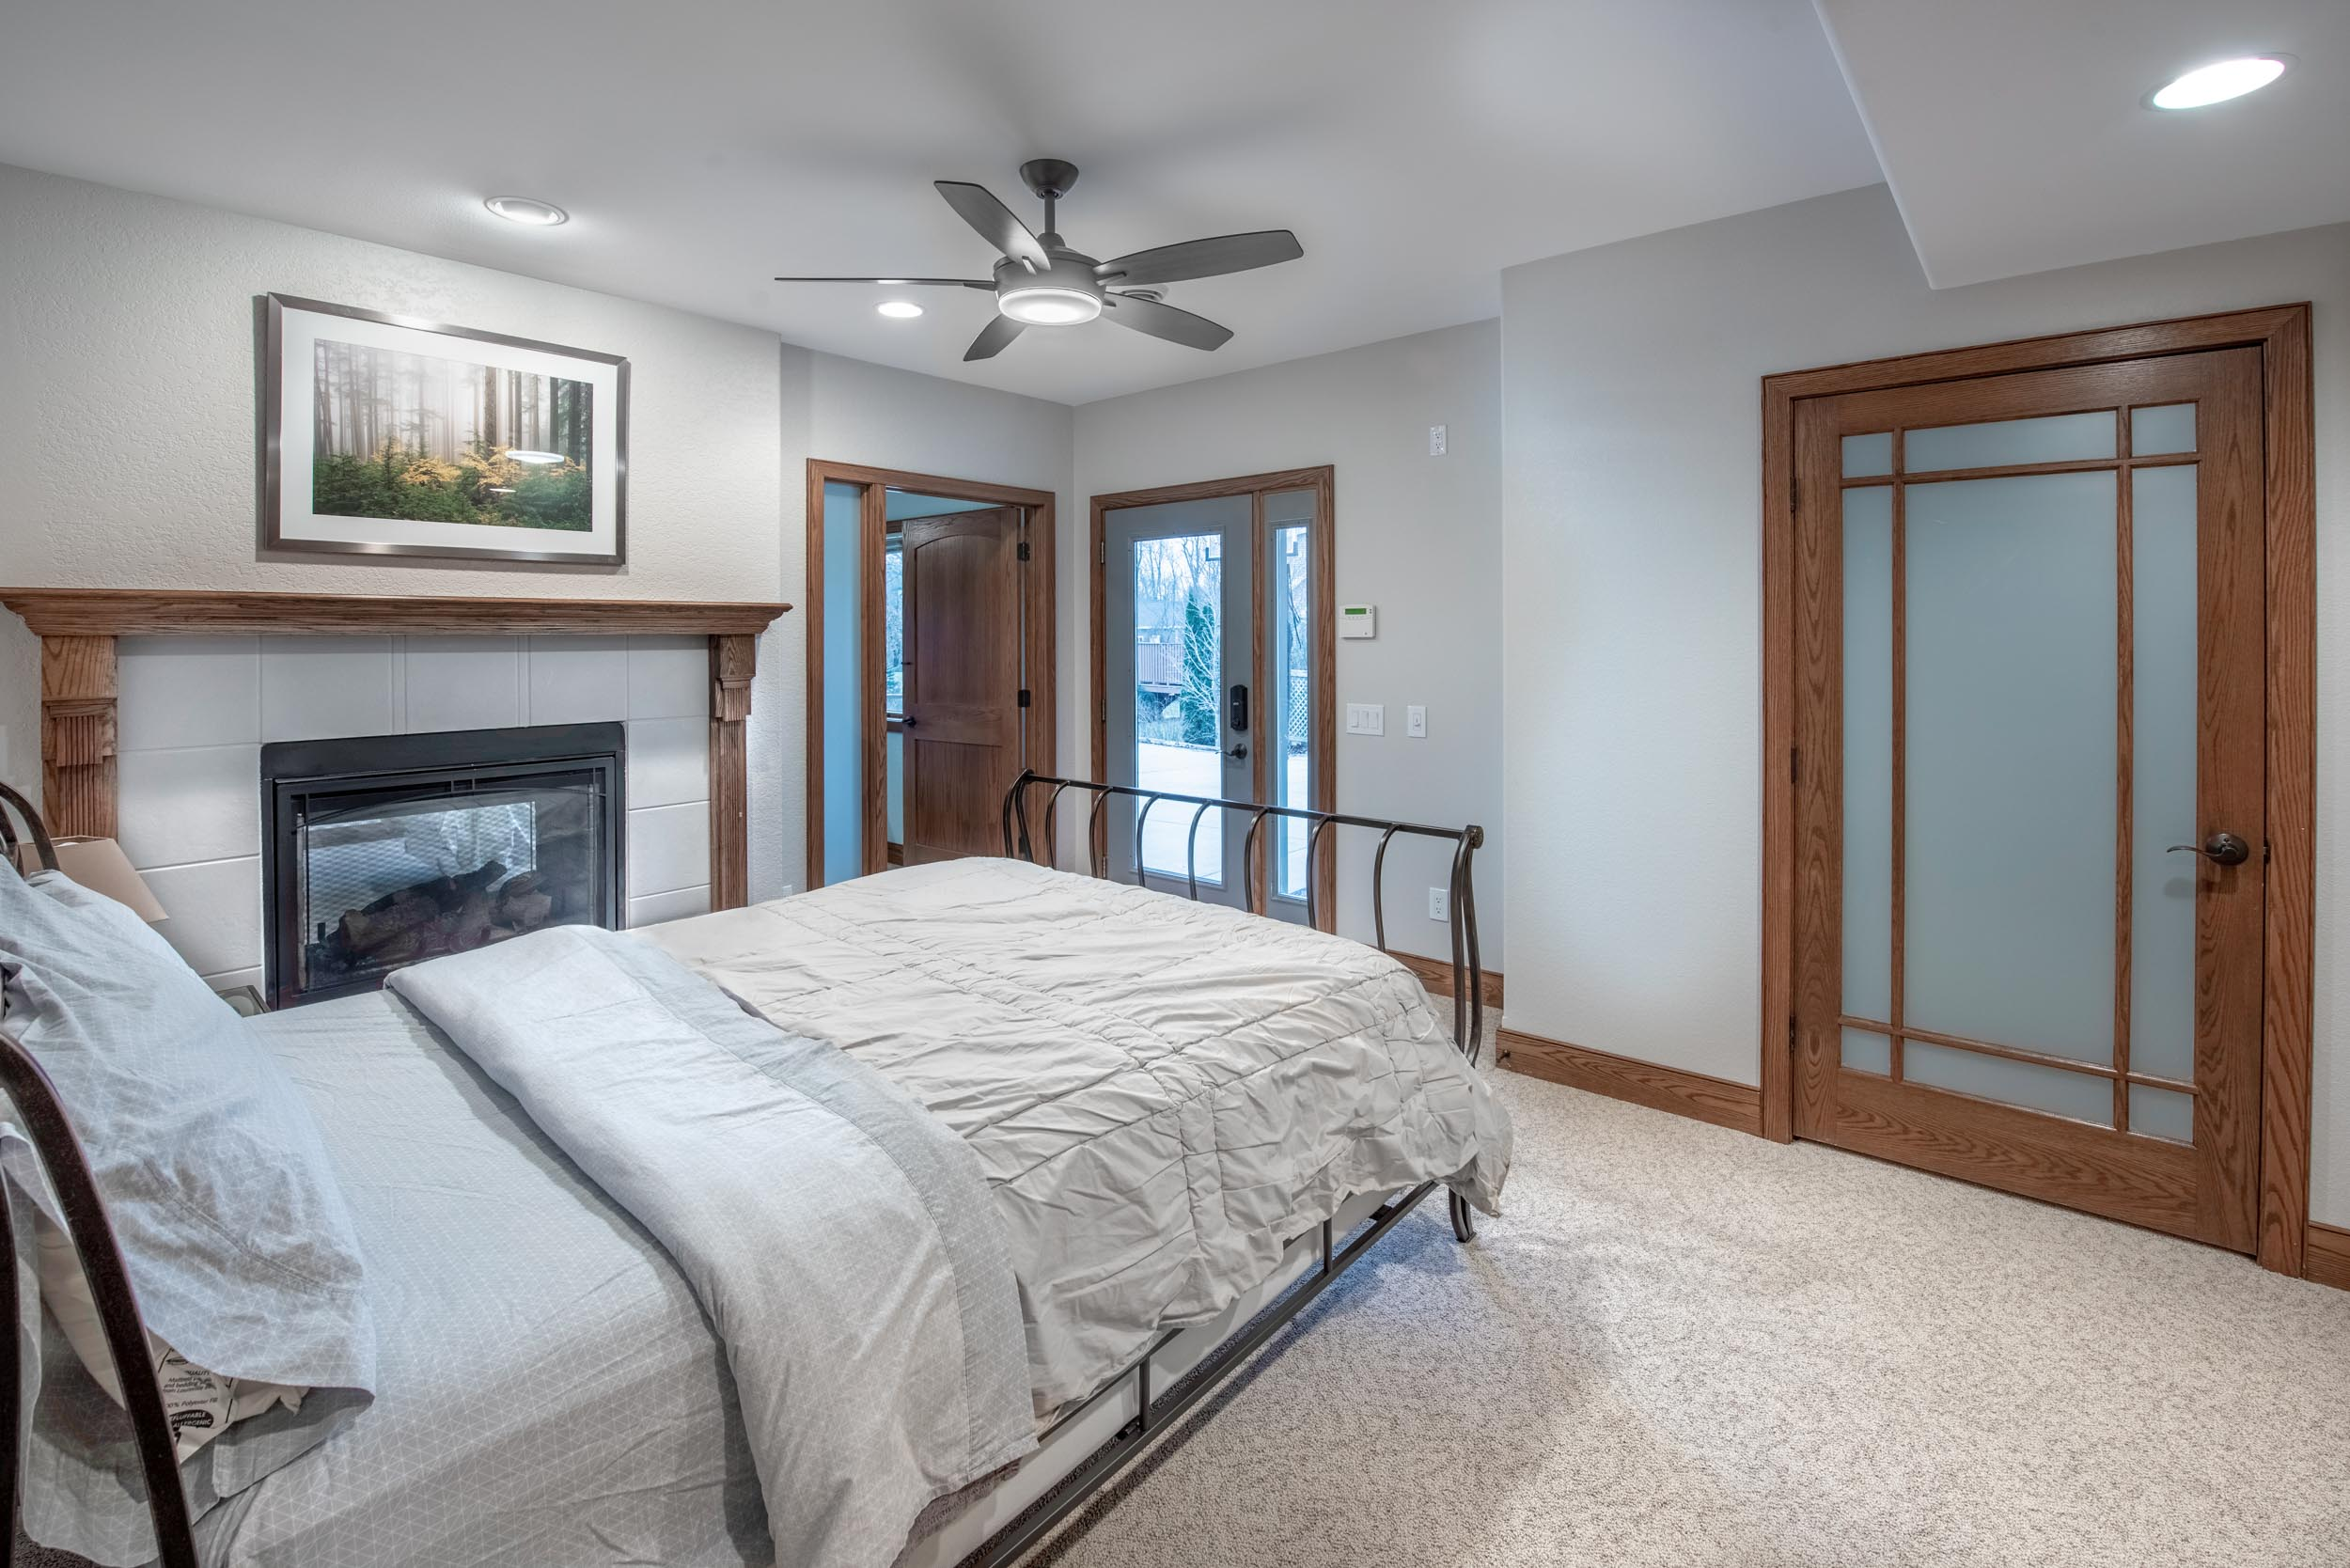 A second Guest Bedroom For Extended Family Stays